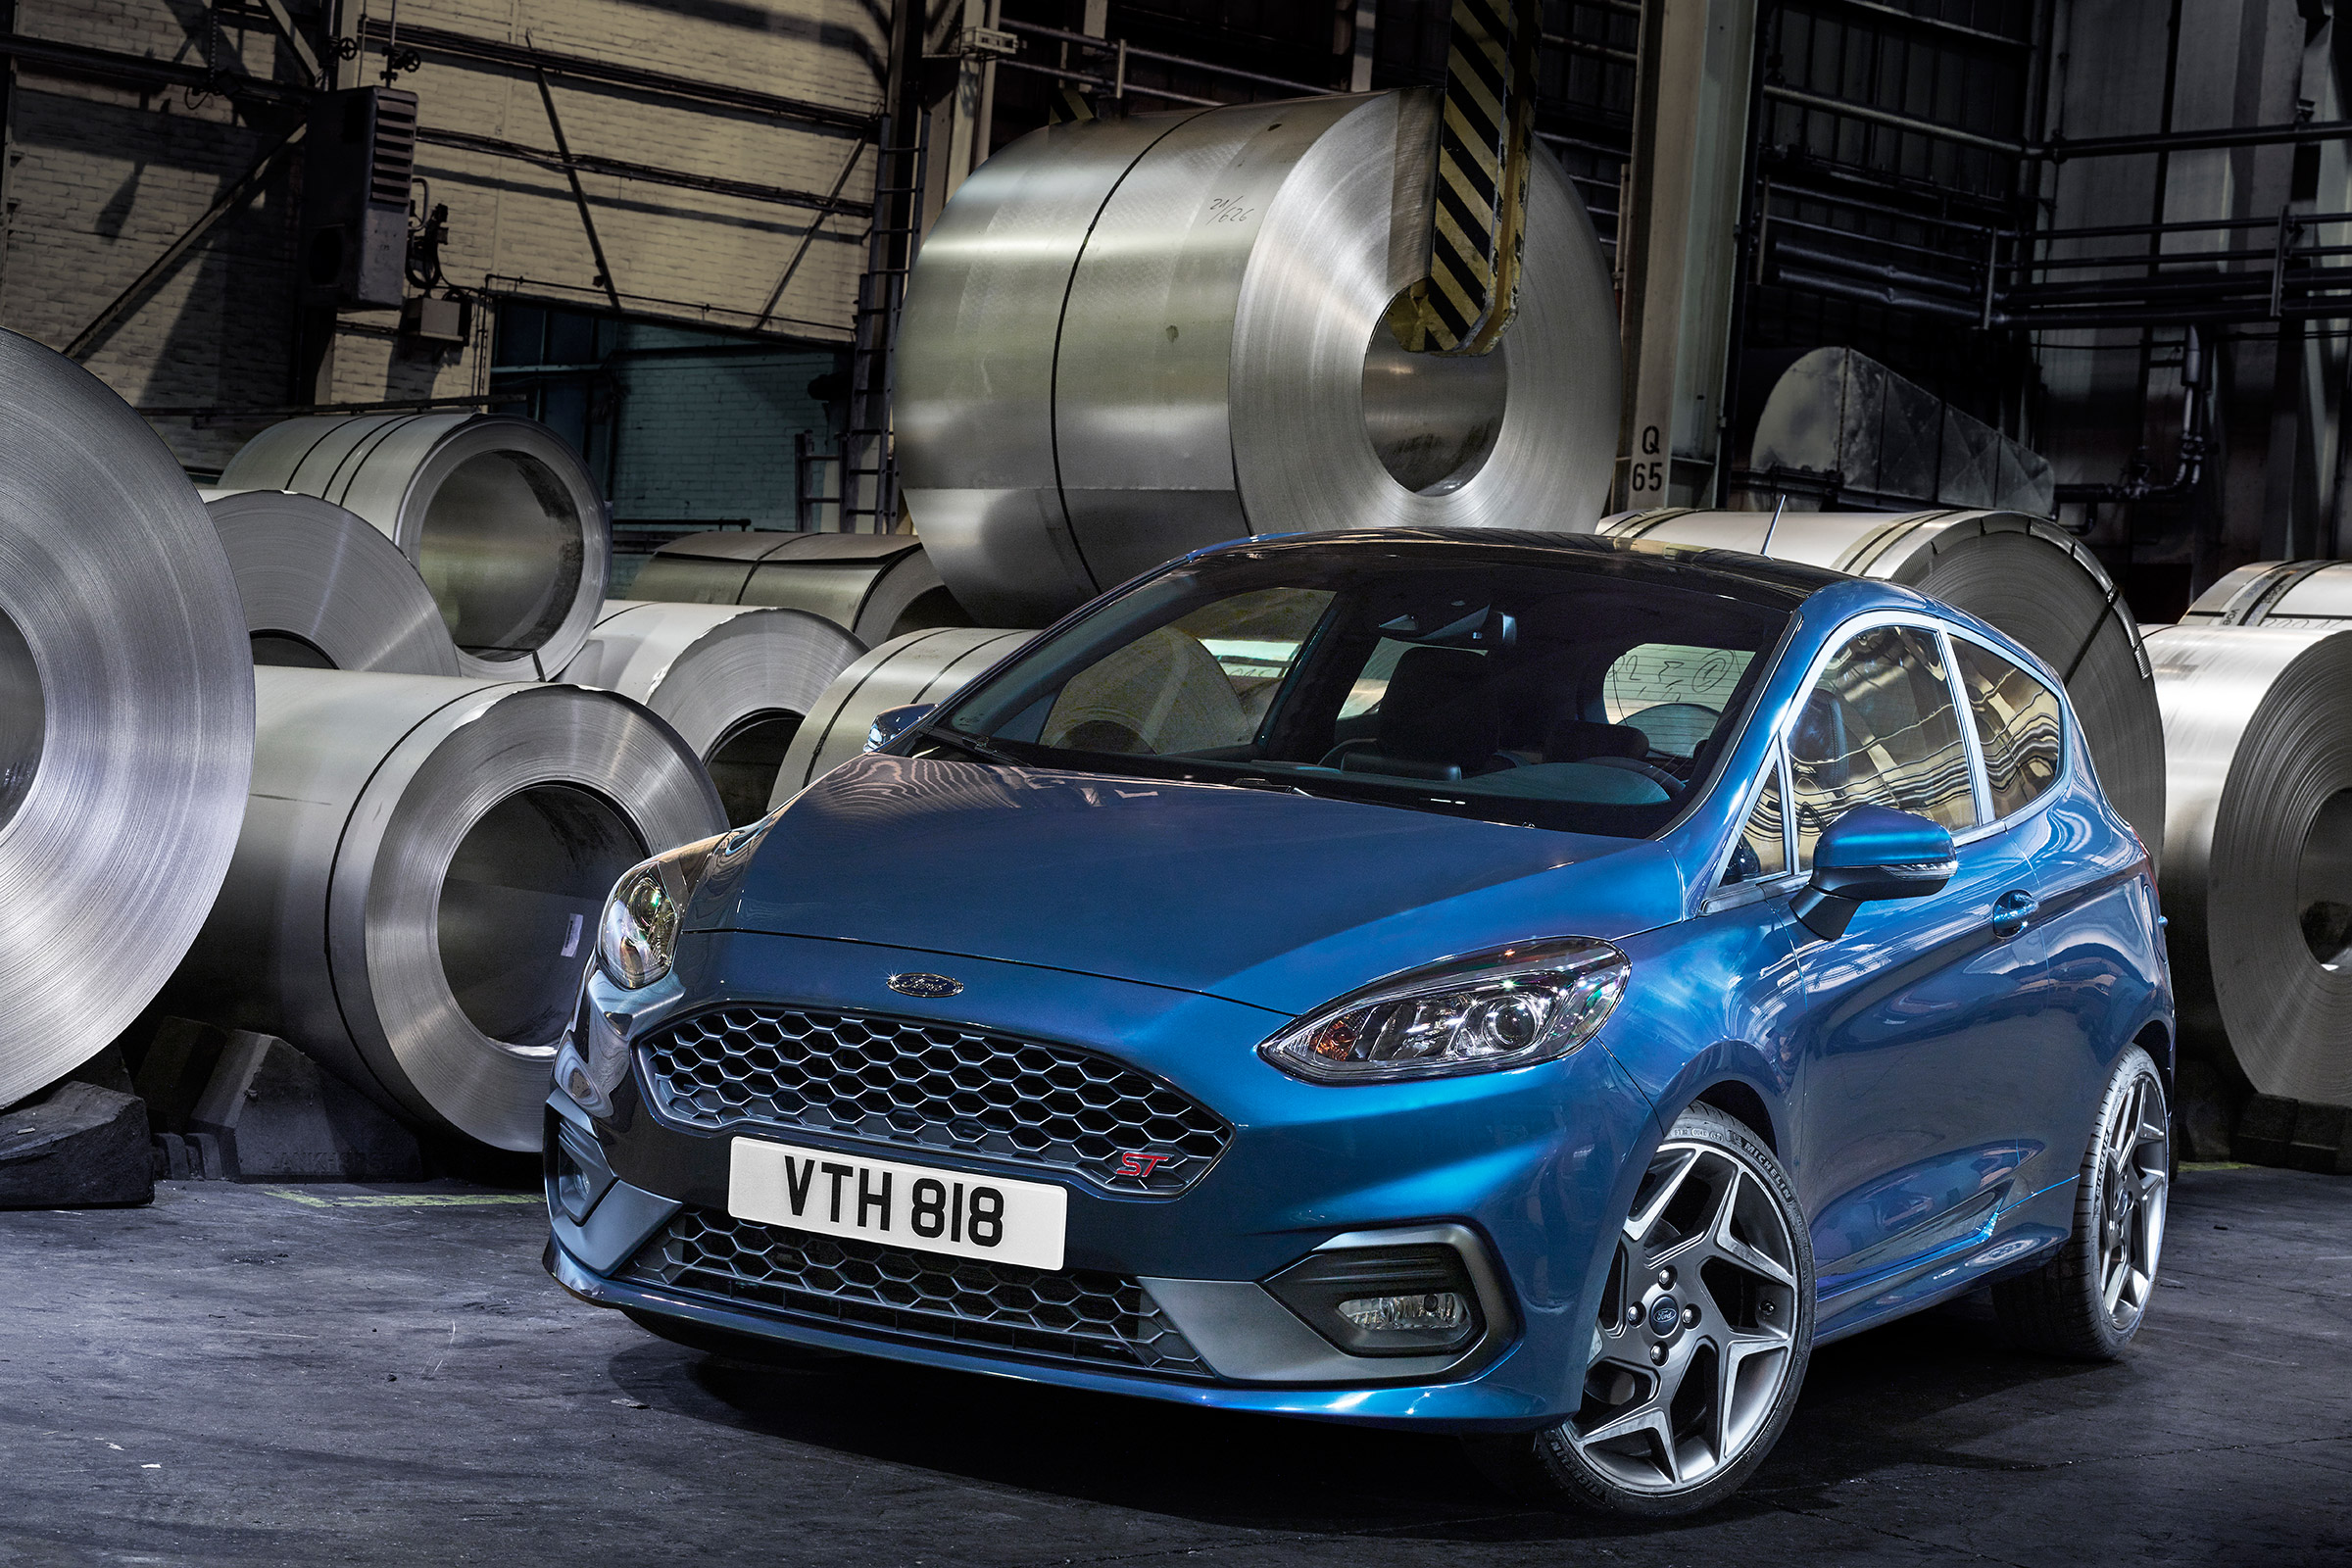 New 2018 Ford Fiesta St Specs And Latest Details On Ford S New Hot Hatch Evo